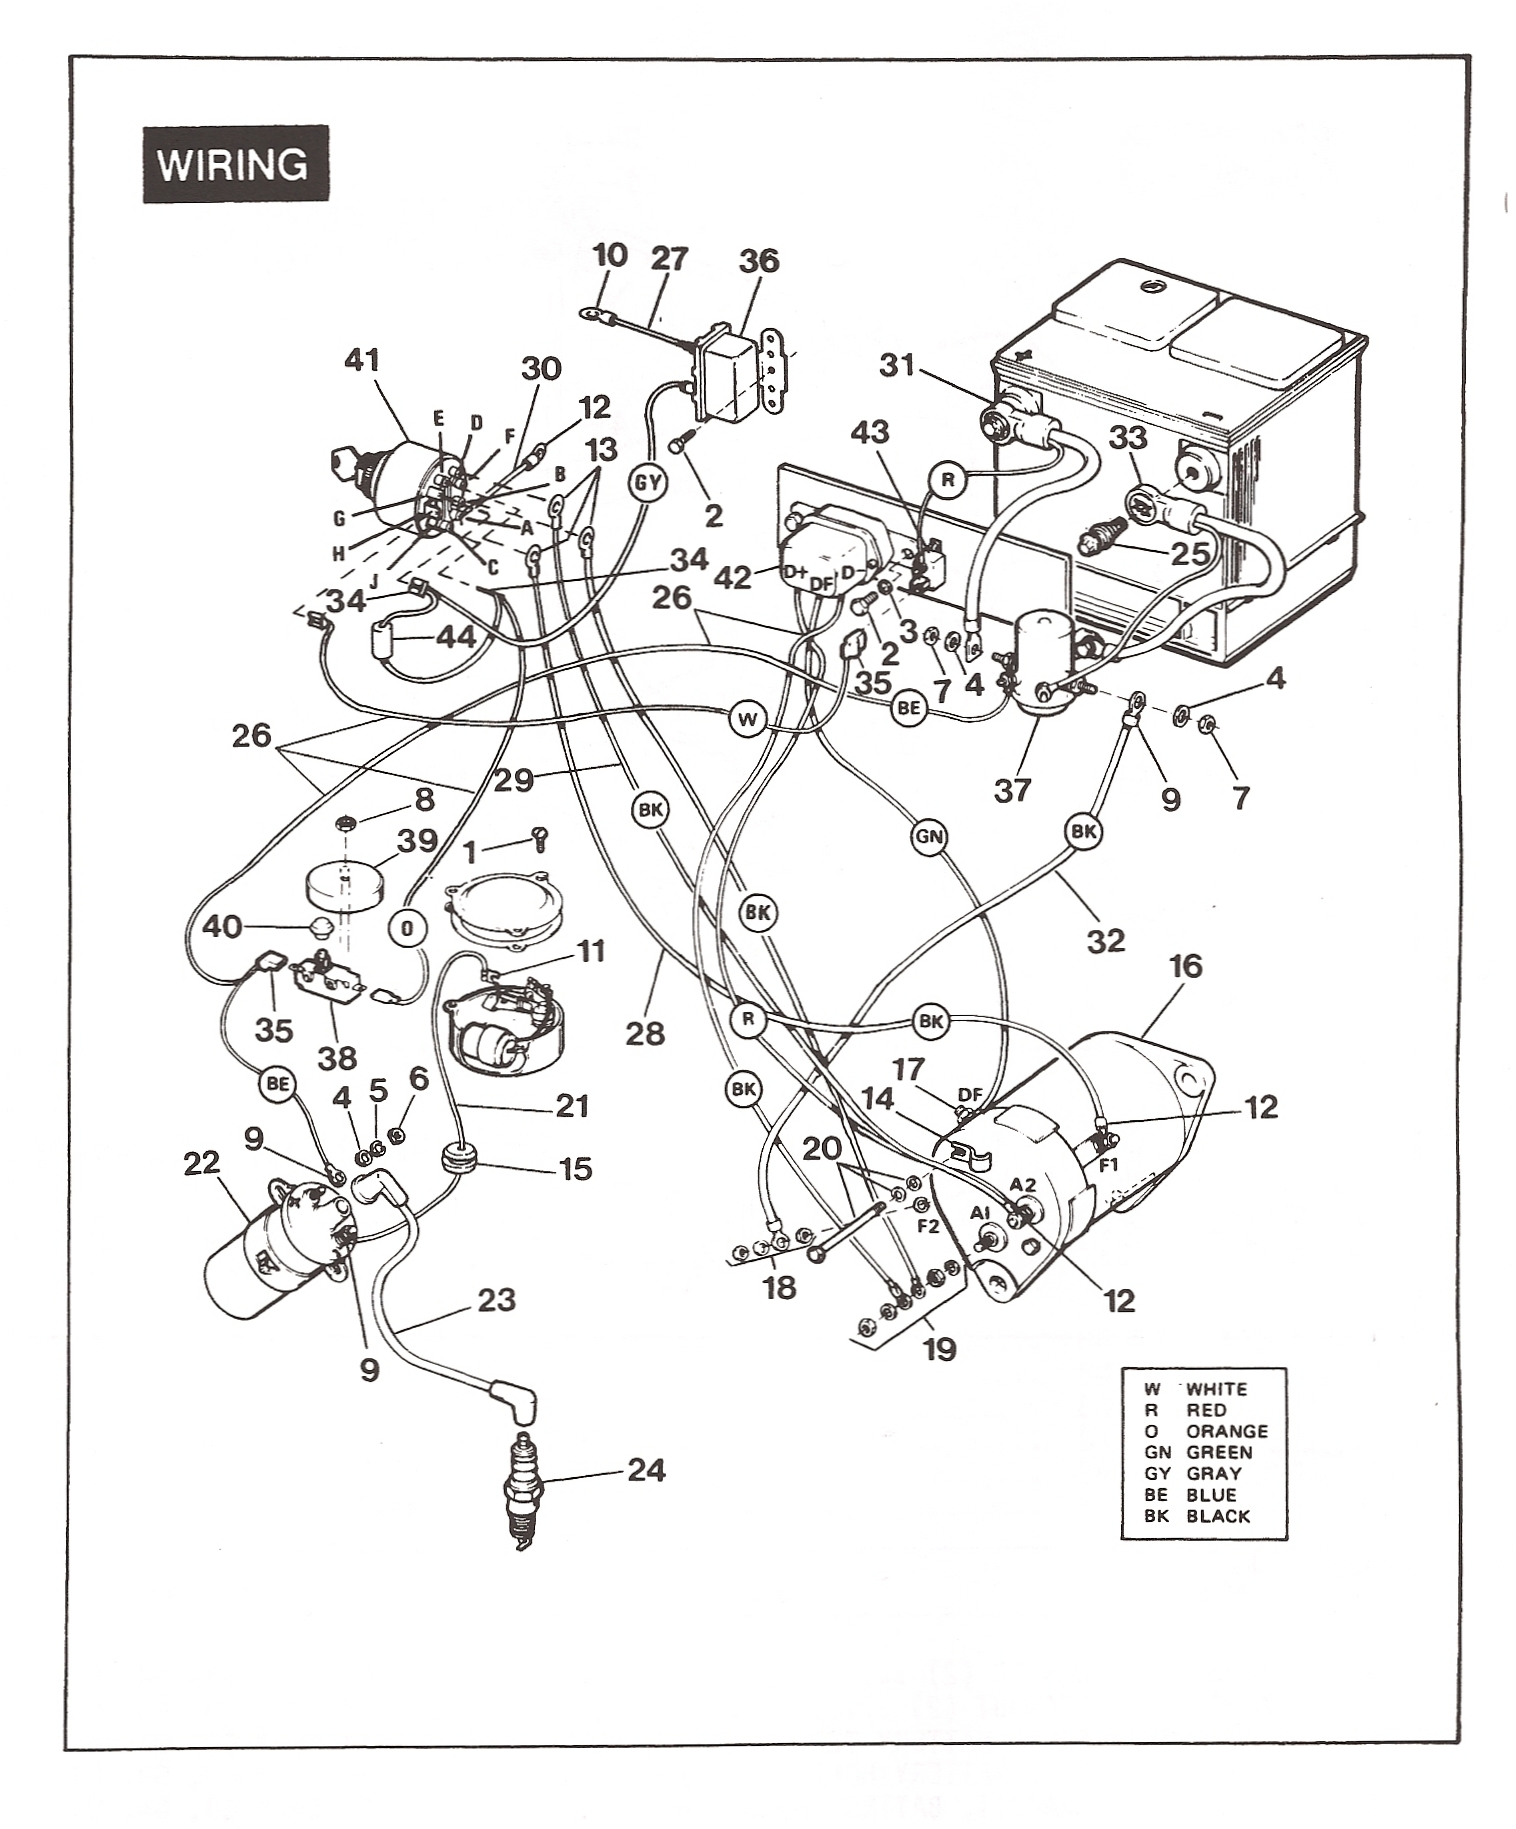 harley davidson dash electrical schematic